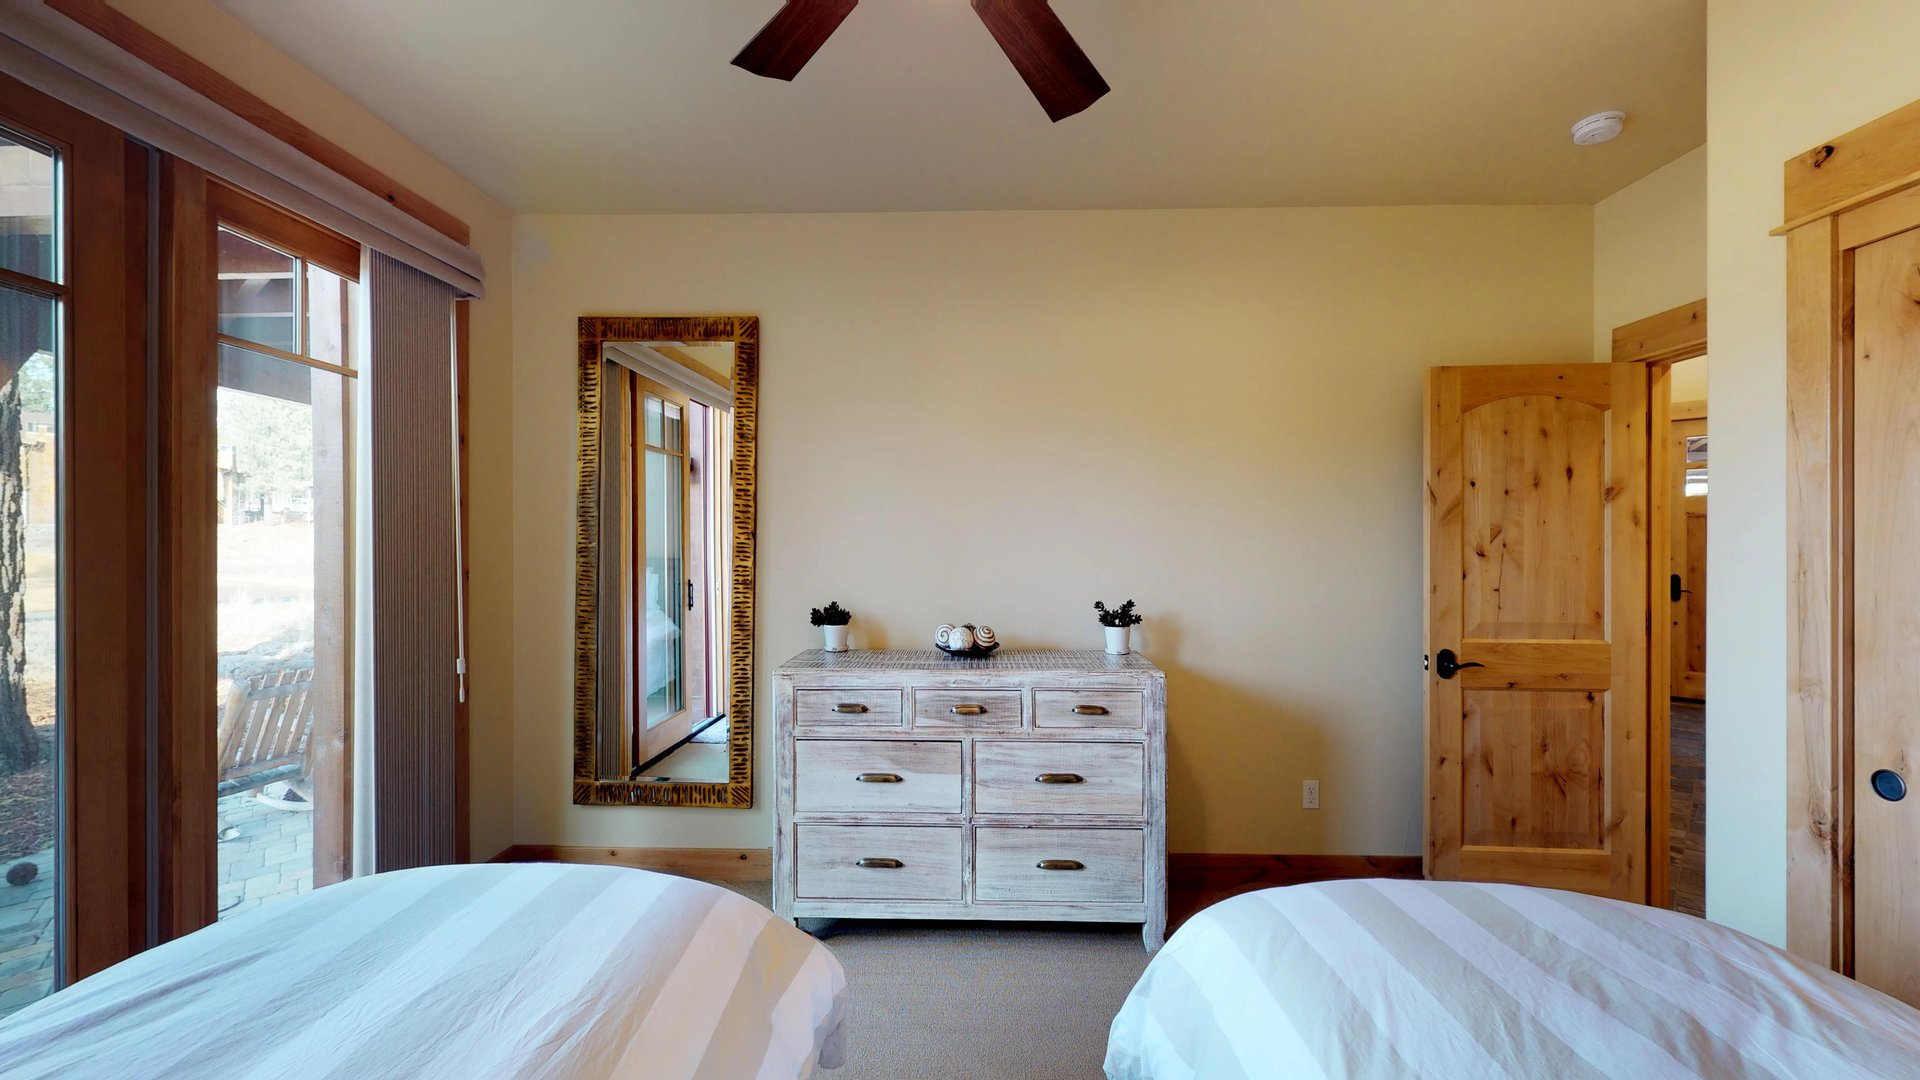 Two Twin-Sized Bed Faces Dresser and Mirror on Wall.